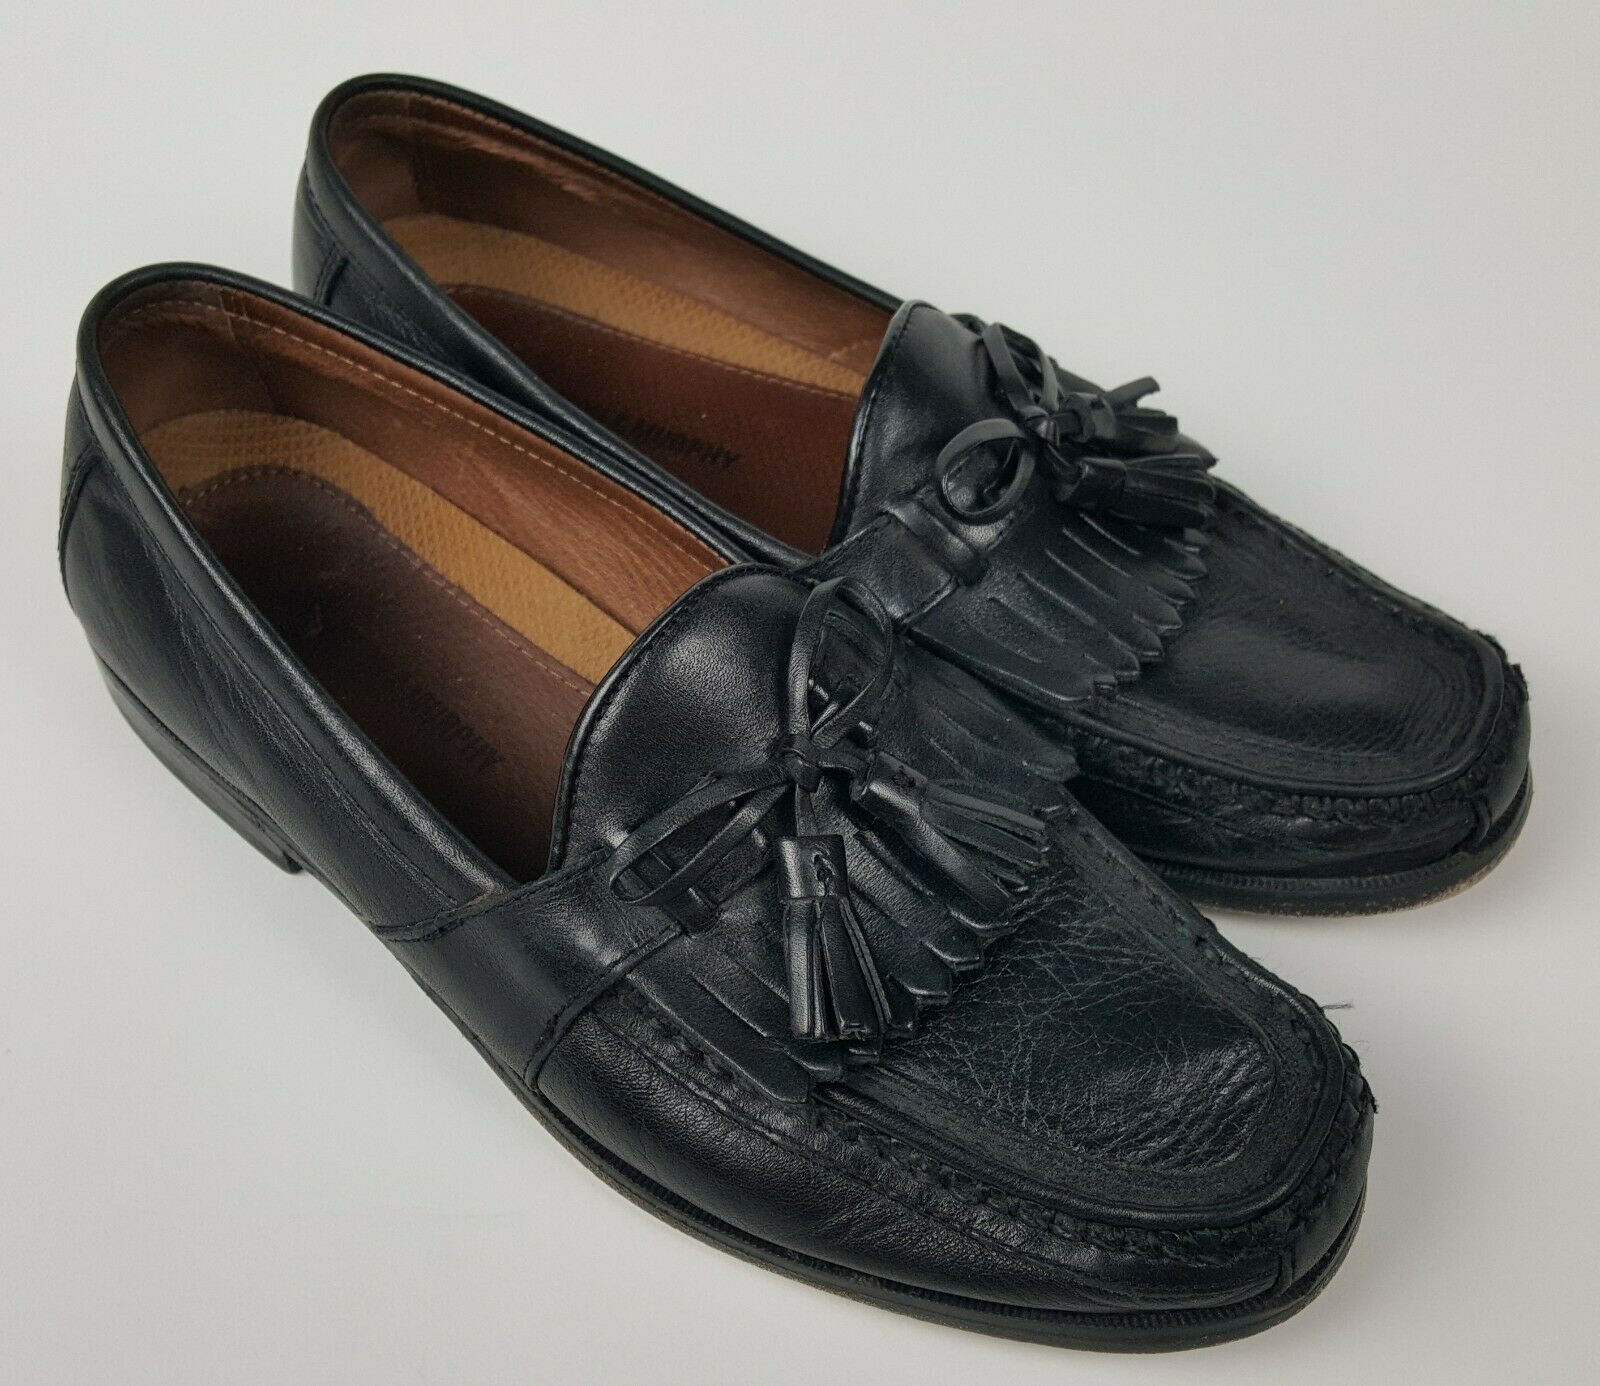 4f6a3e208caa0 Johnston & Murphy Argon II Loafer 20-0593 Tassel Black Leather Men's ...